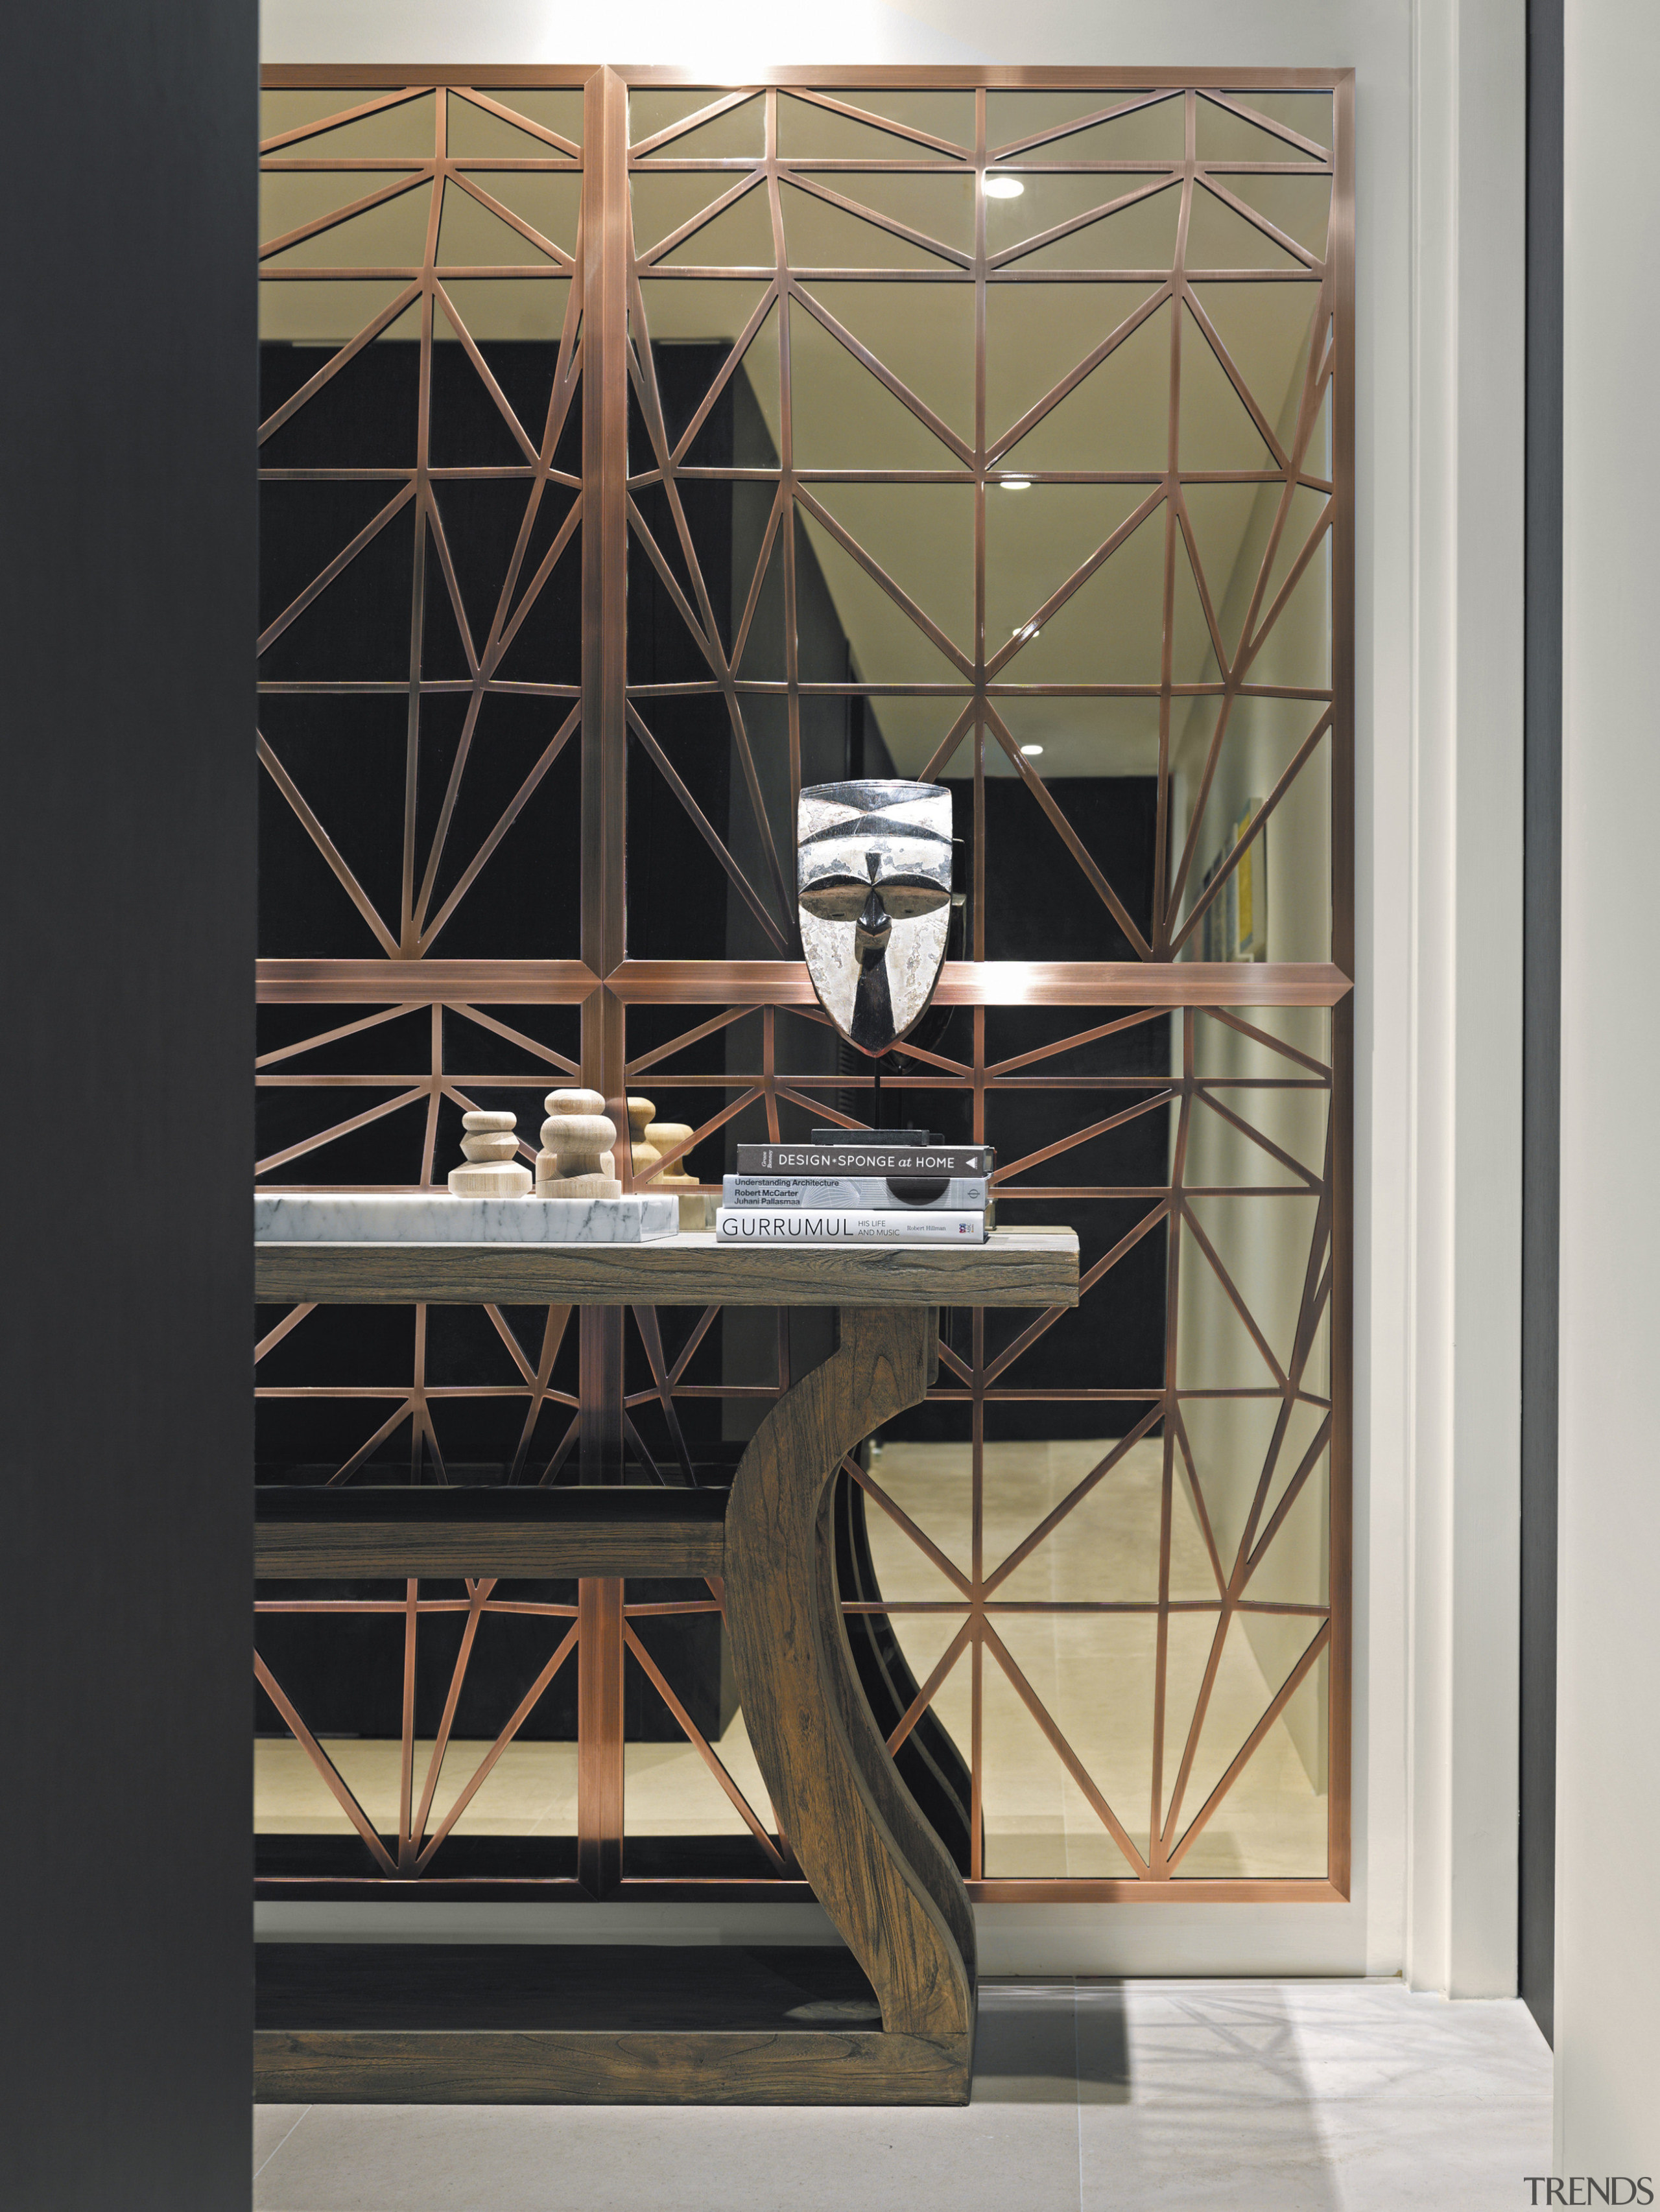 A mirrored wall and console features in the furniture, product design, shelf, shelving, black, gray